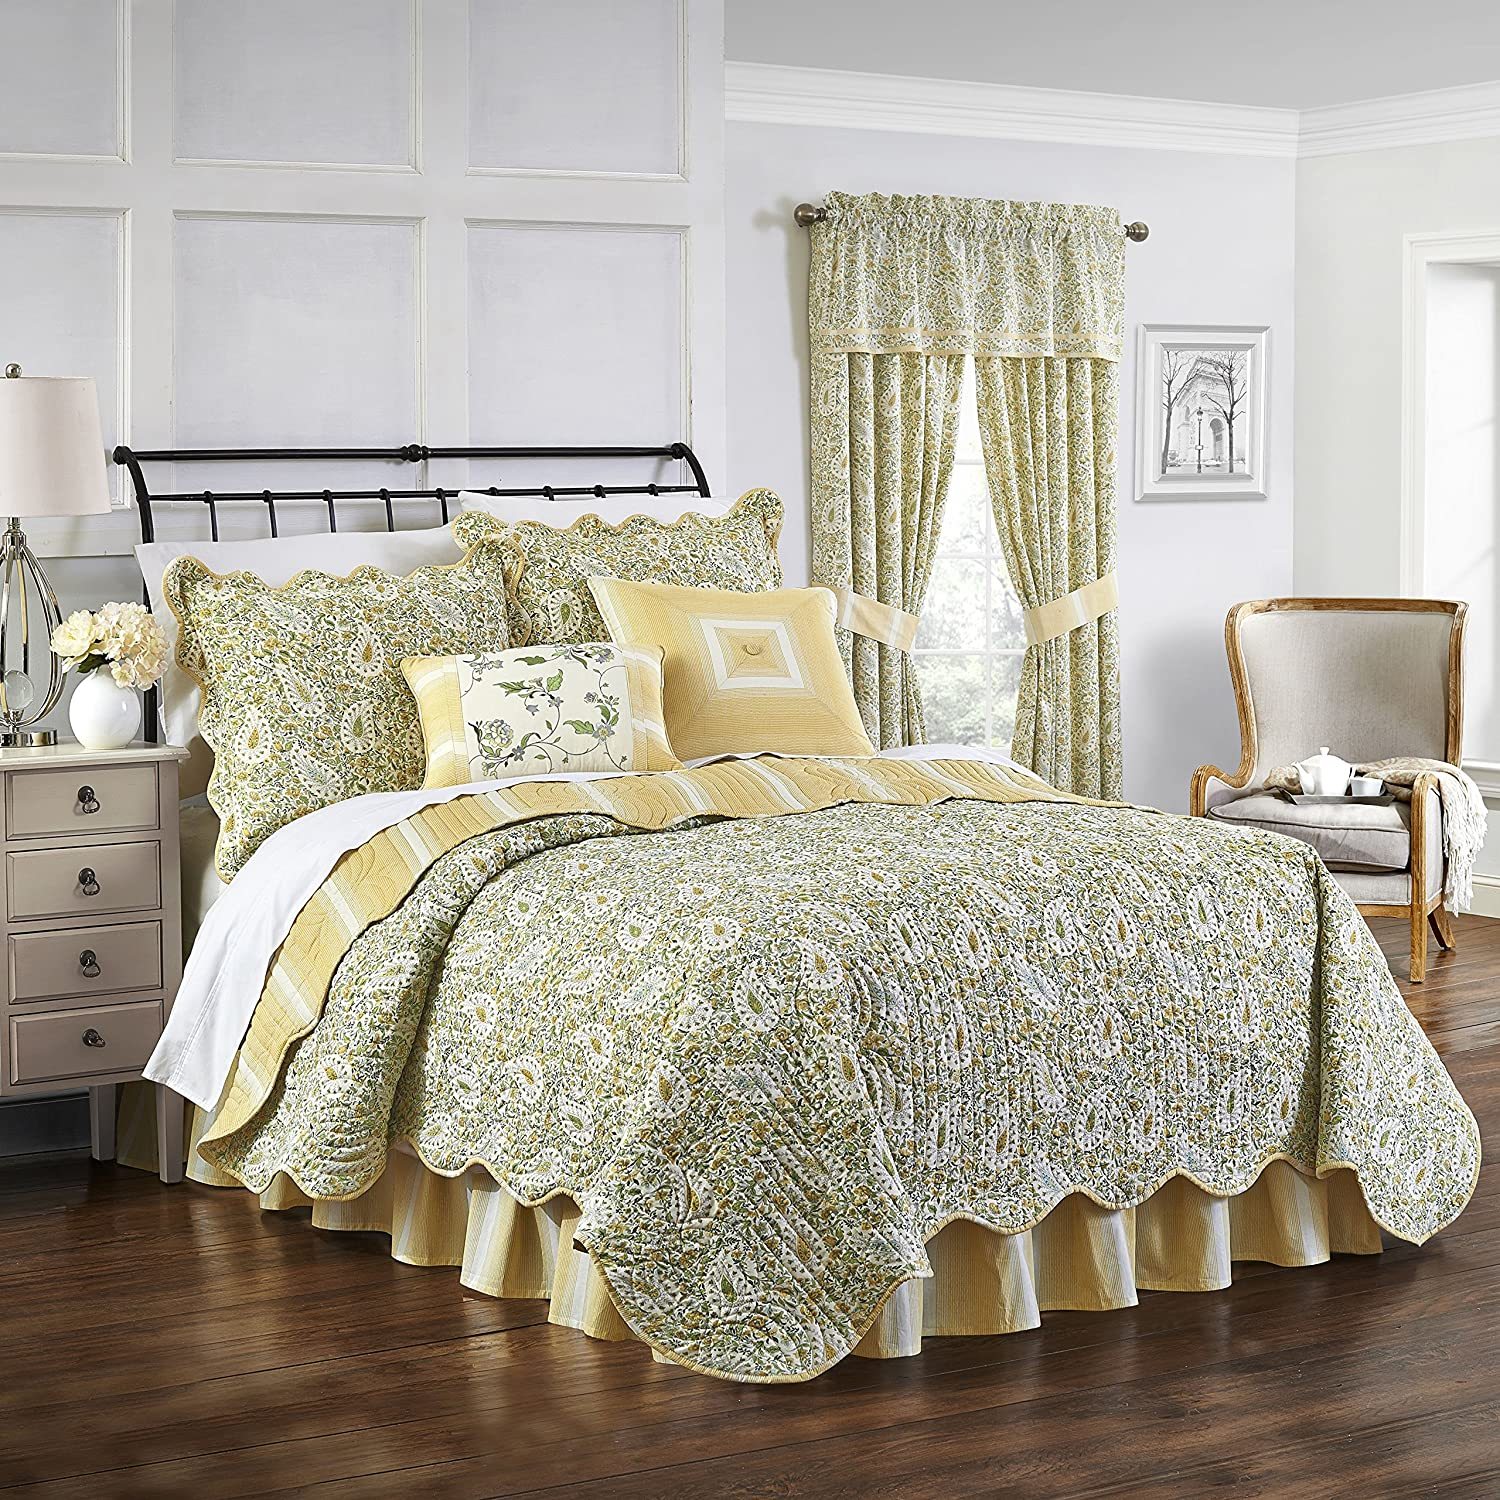 Waverly Paisley Verveine Reversible Quilt Collection, King, Spring